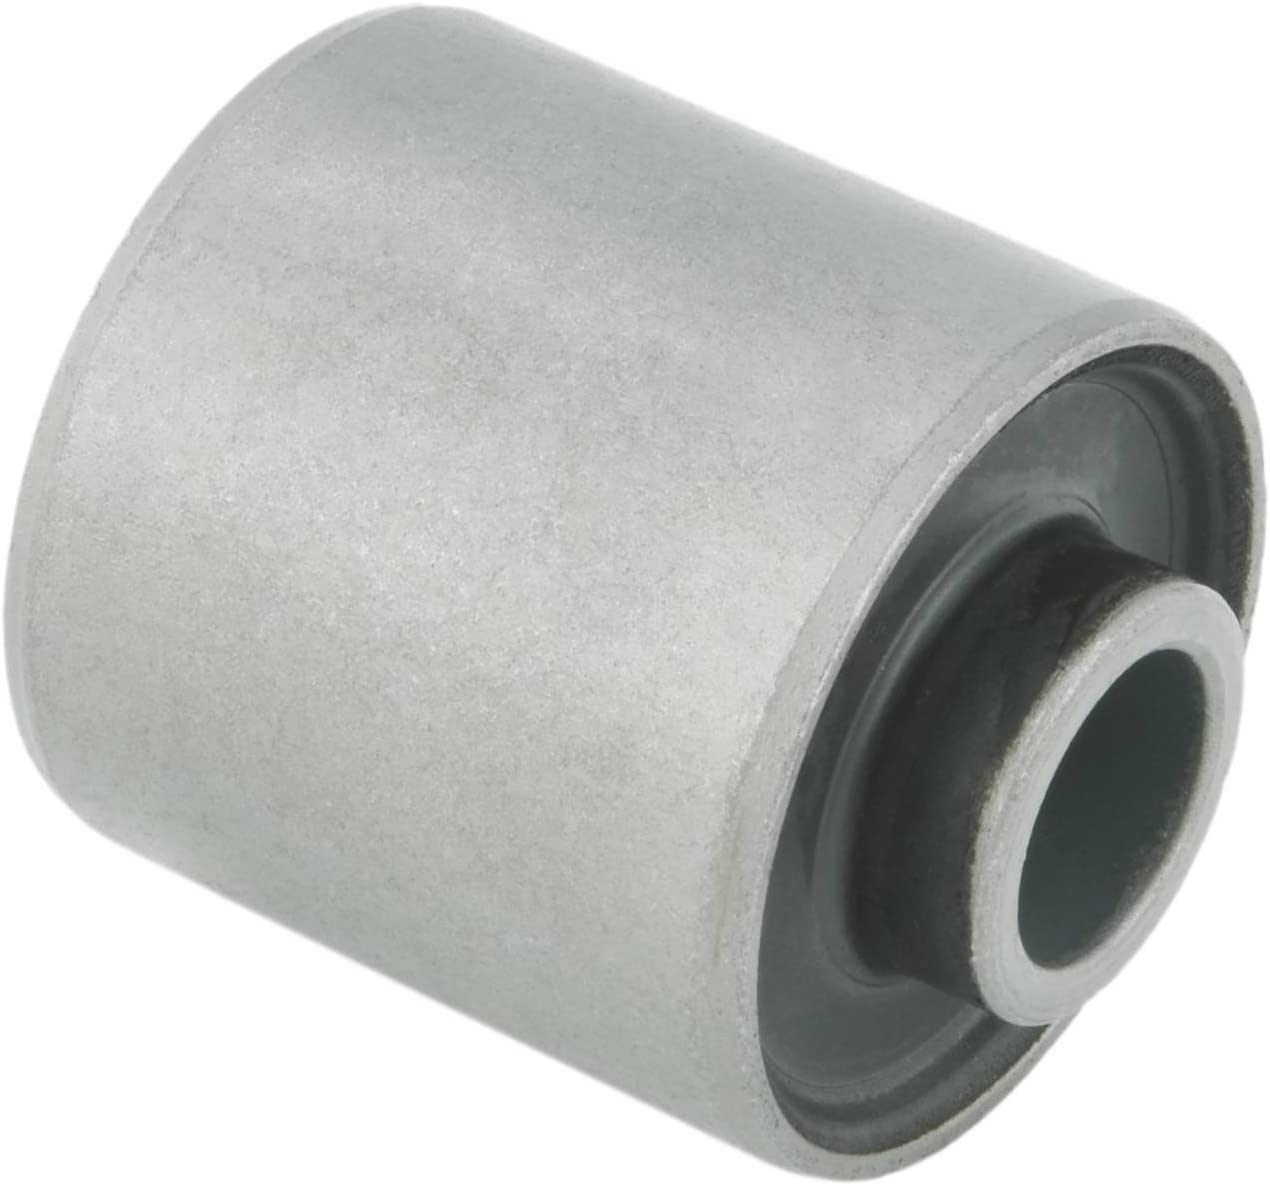 Arm Bushing Rear Lower Arm Febest TAB-575 Oem 48620-50081 48640-50080